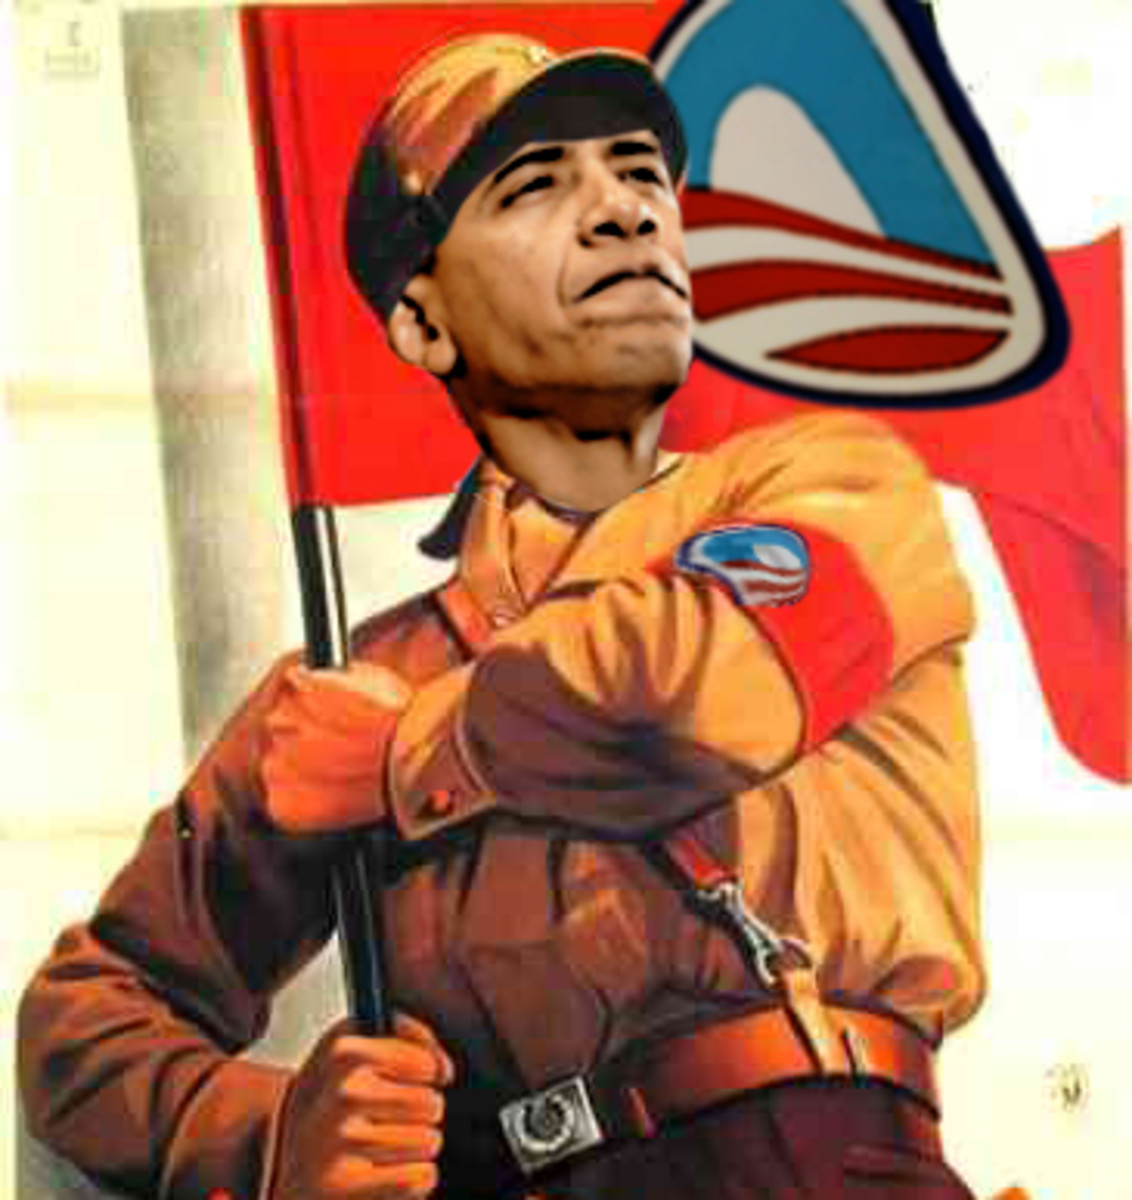 POLITICAL POSTER OF THE OBAMA YOUTH